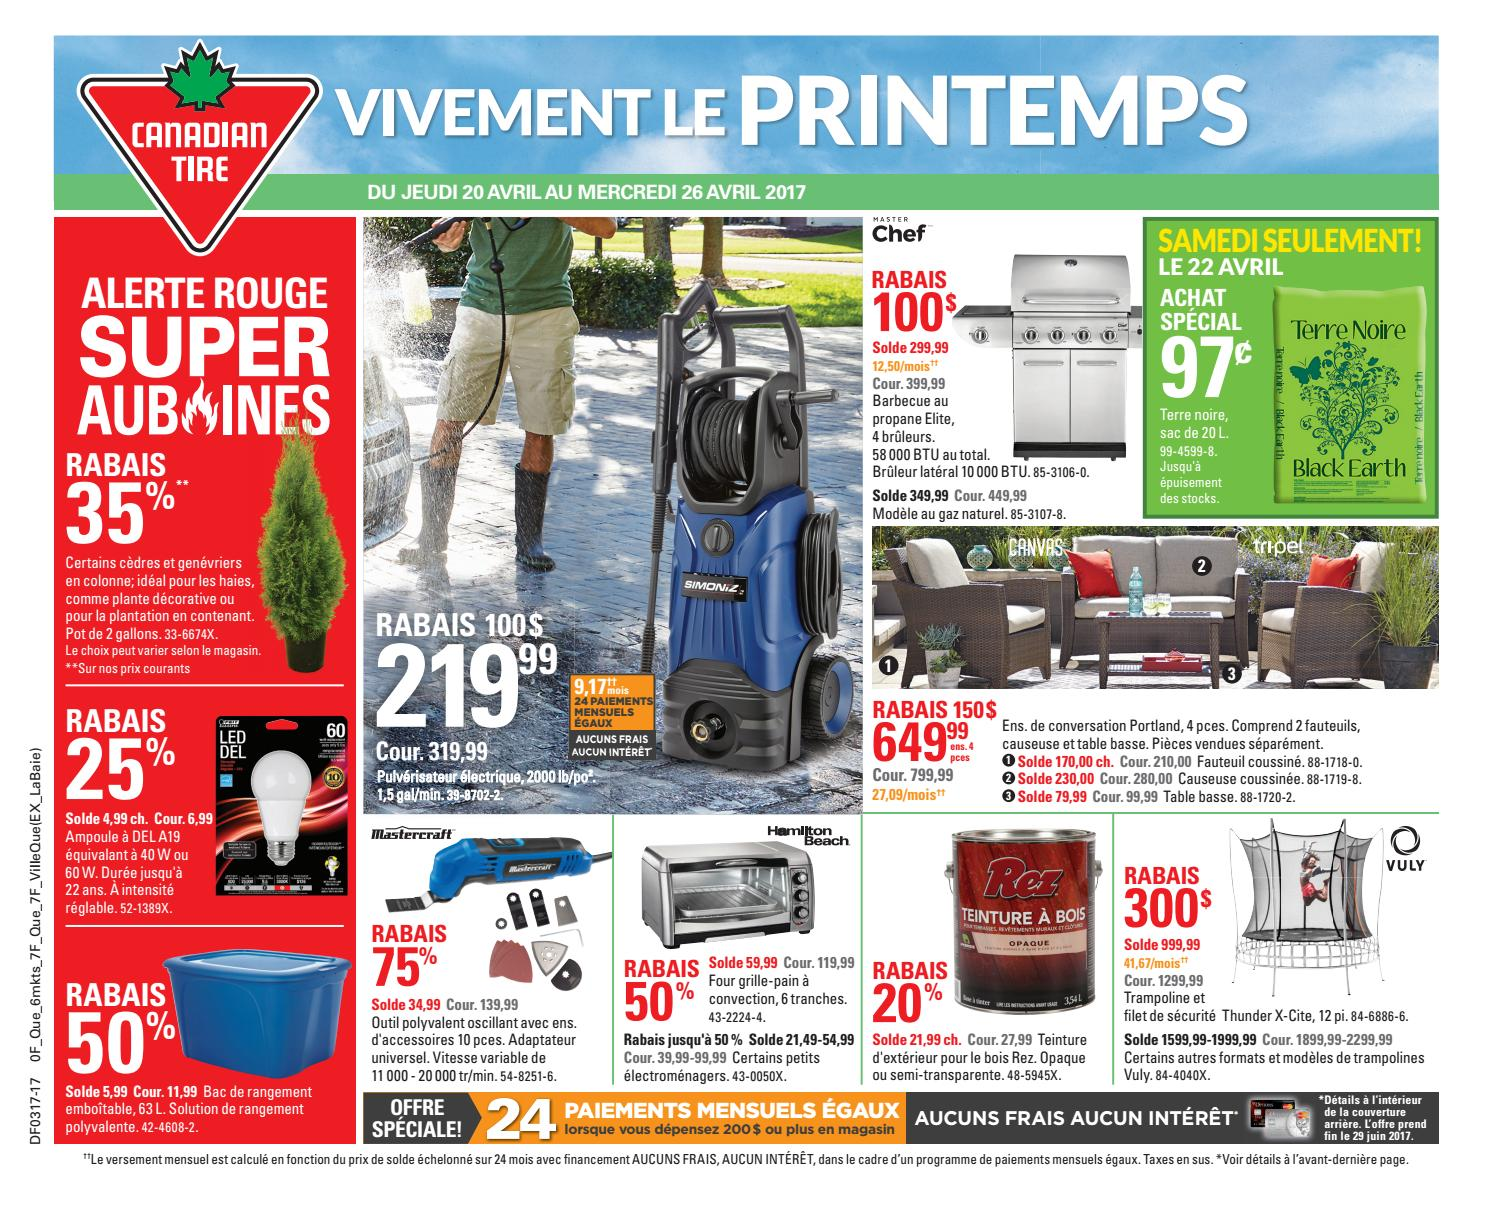 Pouf Exterieur Canadian Tire Publisac 2017 Flyer Ctc Wk17 Fr 317 7f 6mk By Salewhale